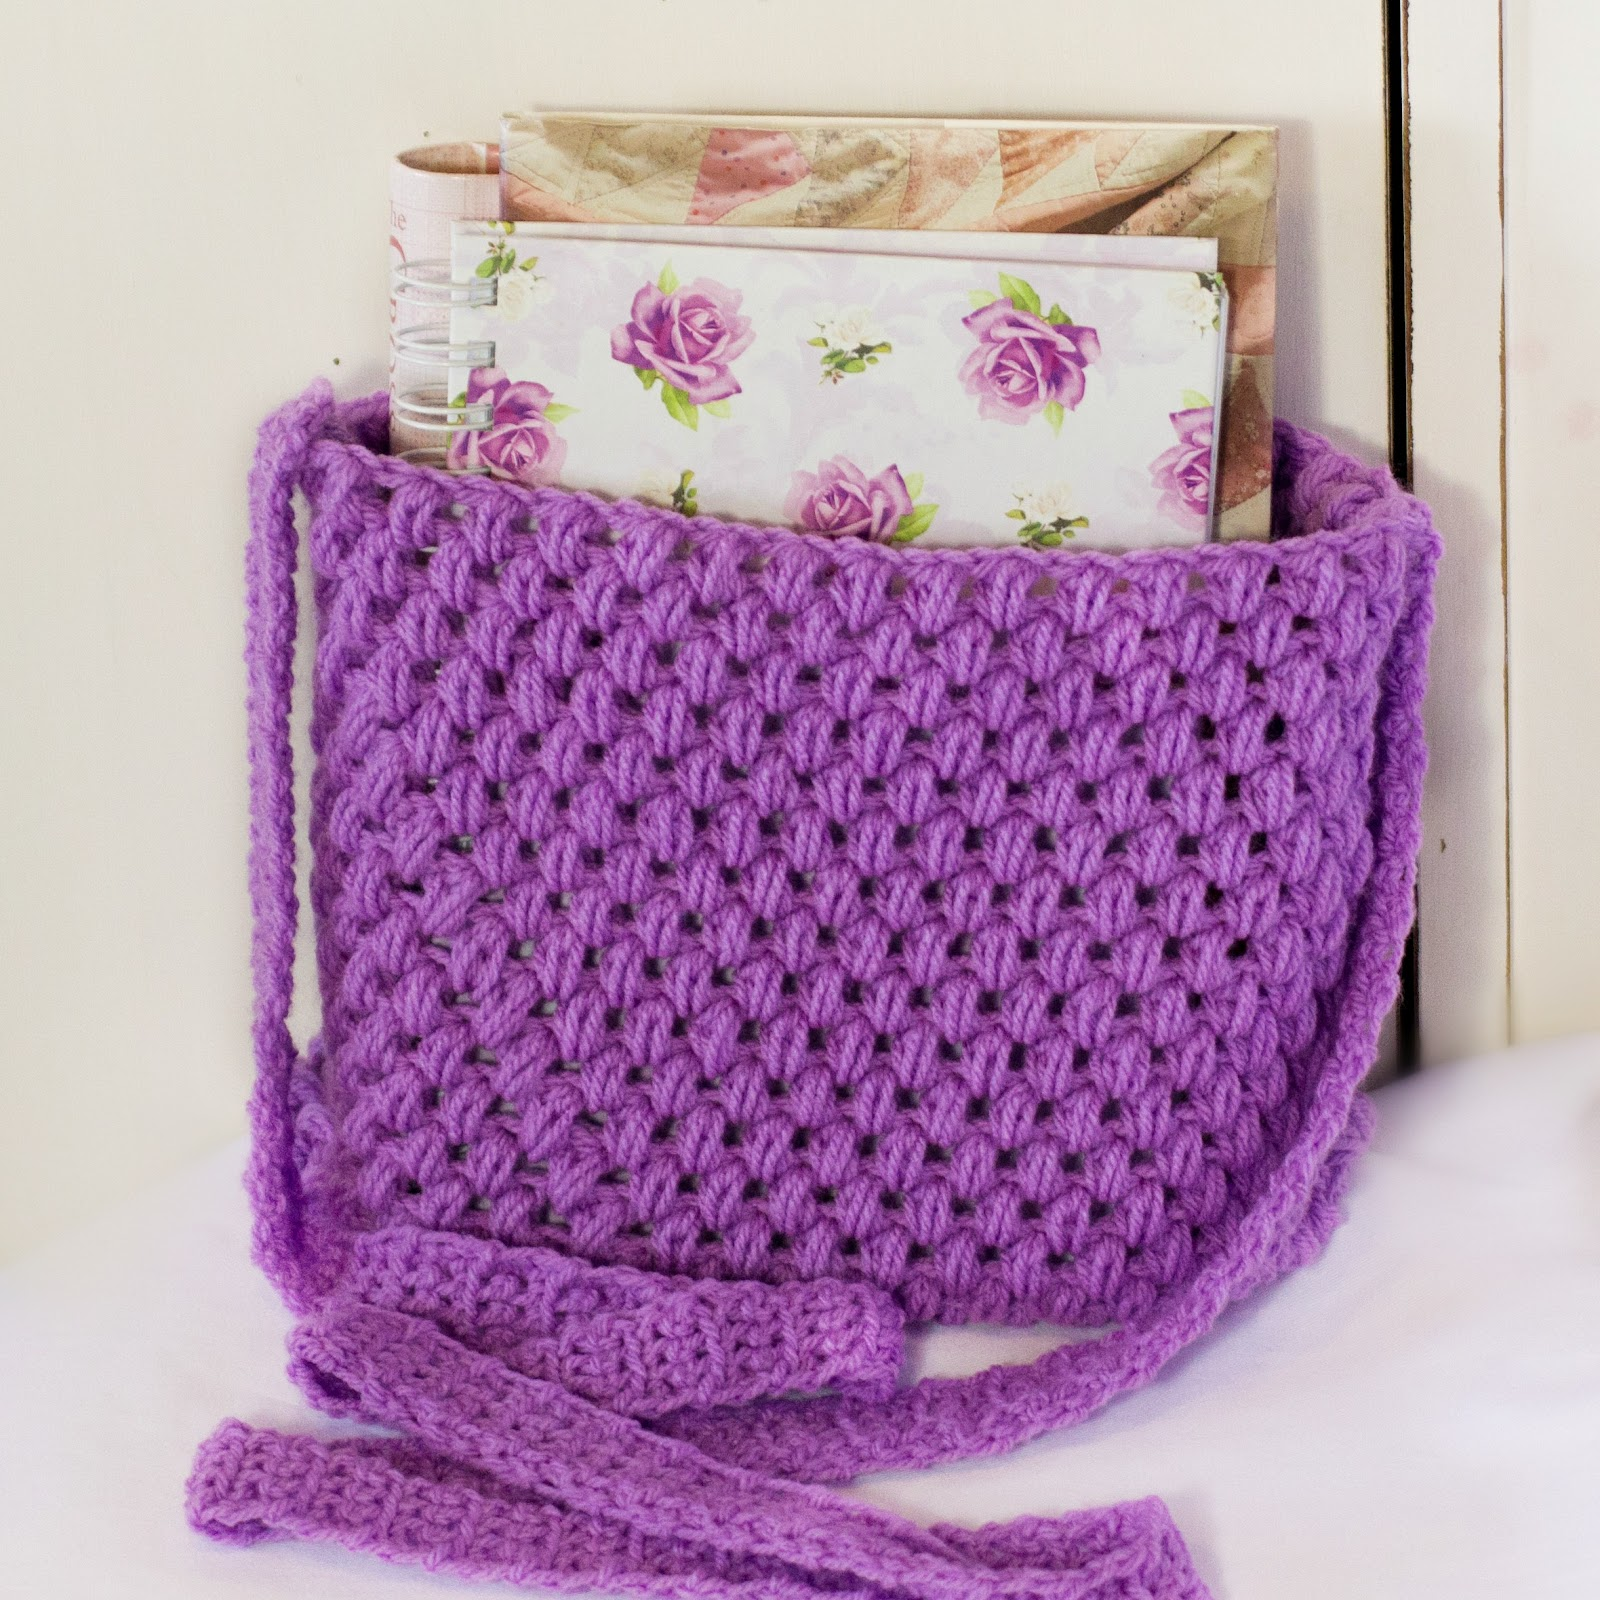 Crochet Purse Ideas : Hopeful Honey Craft, Crochet, Create: March 2012